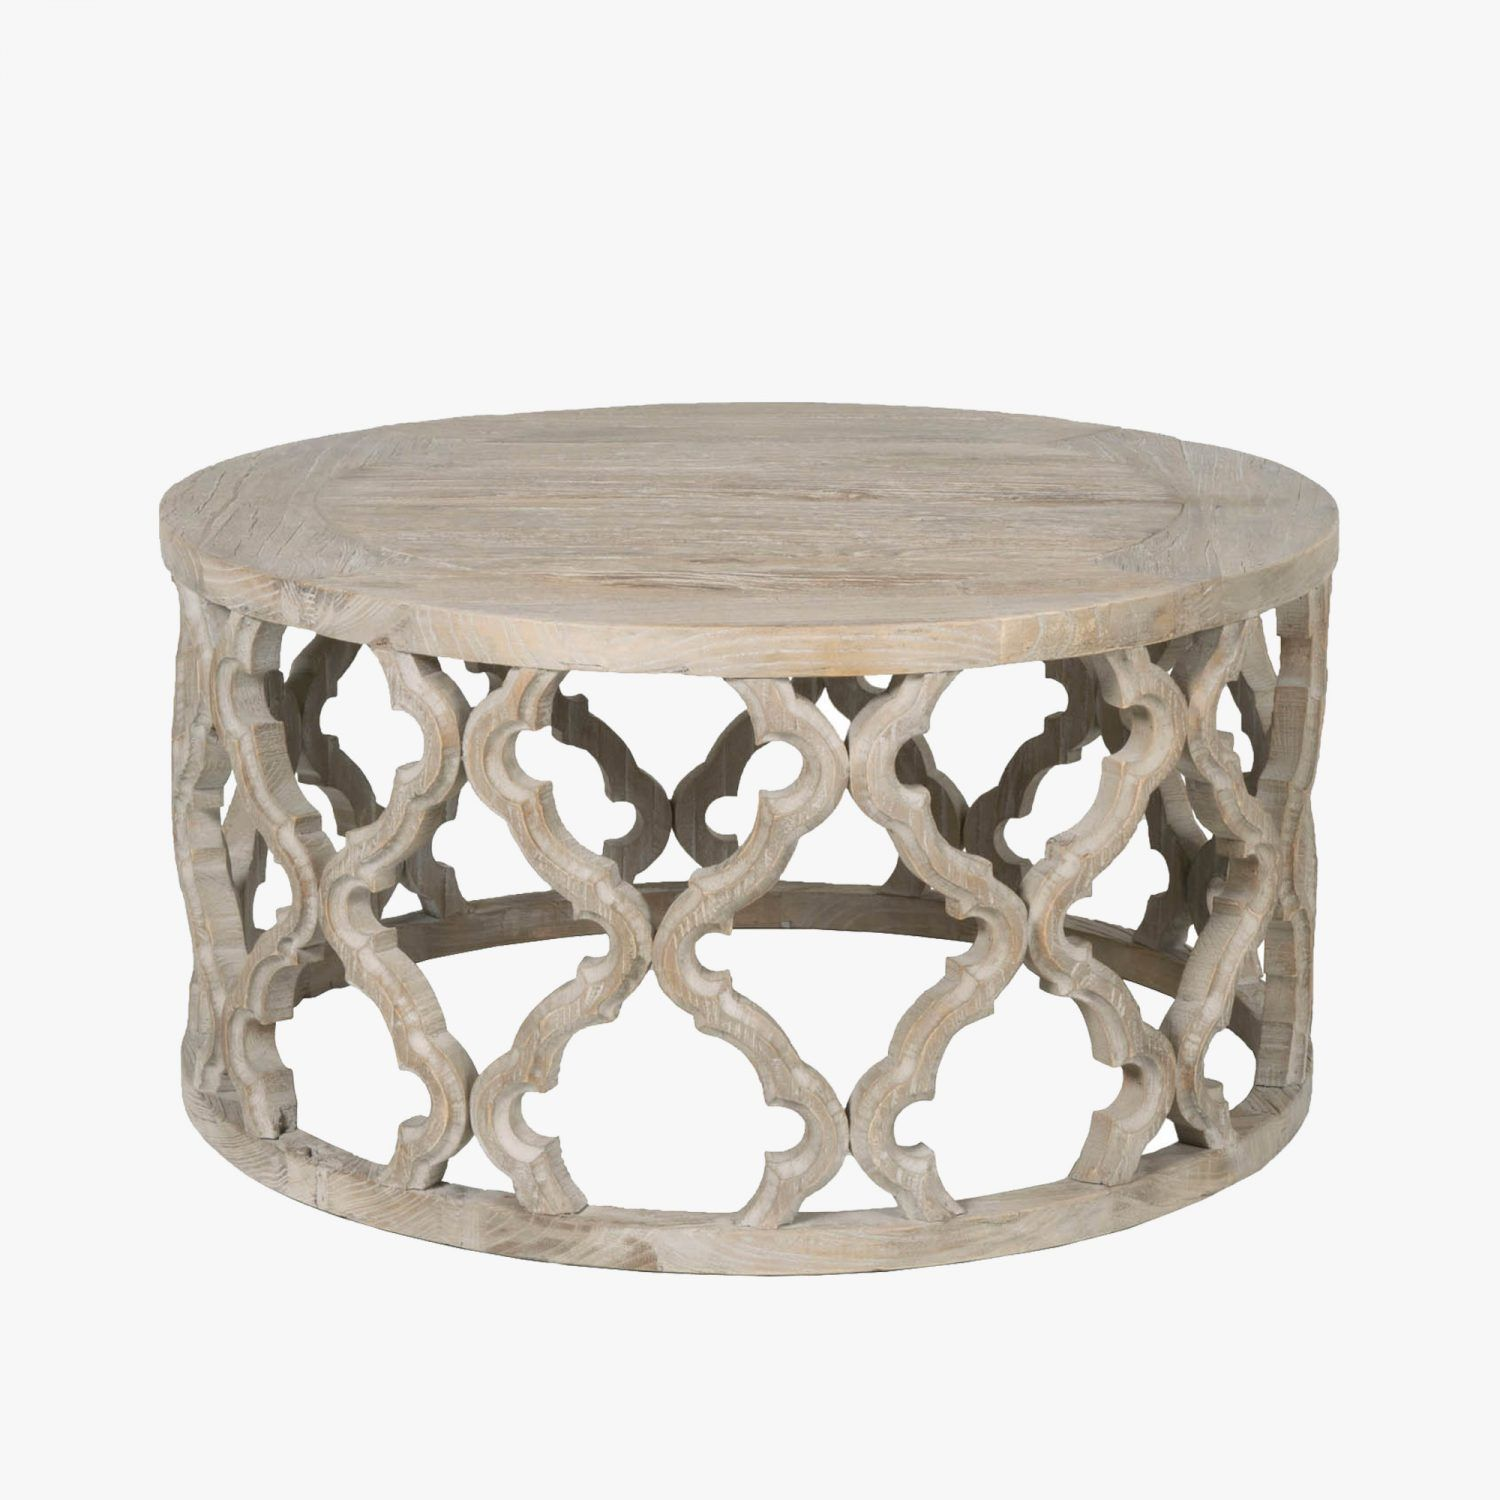 Carved Quatrefoil Coffee Table Shop Coffee Tables Dear Keaton Round Wooden Coffee Table Coffee Table Wood Reclaimed Wood Coffee Table